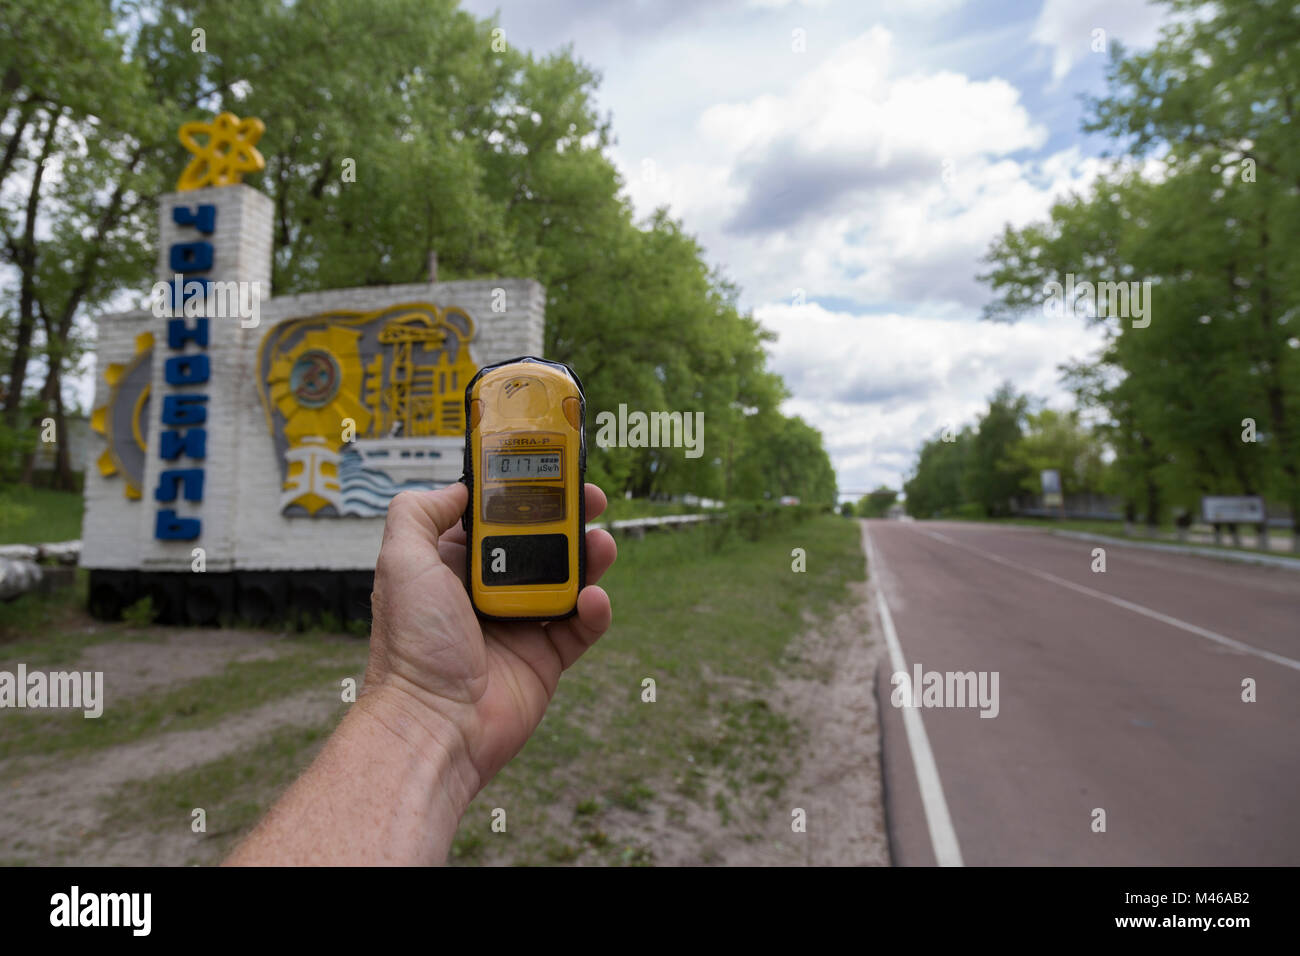 A man takes a radiation reading with a Geiger counter at the entrance to Chernobyl - Stock Image